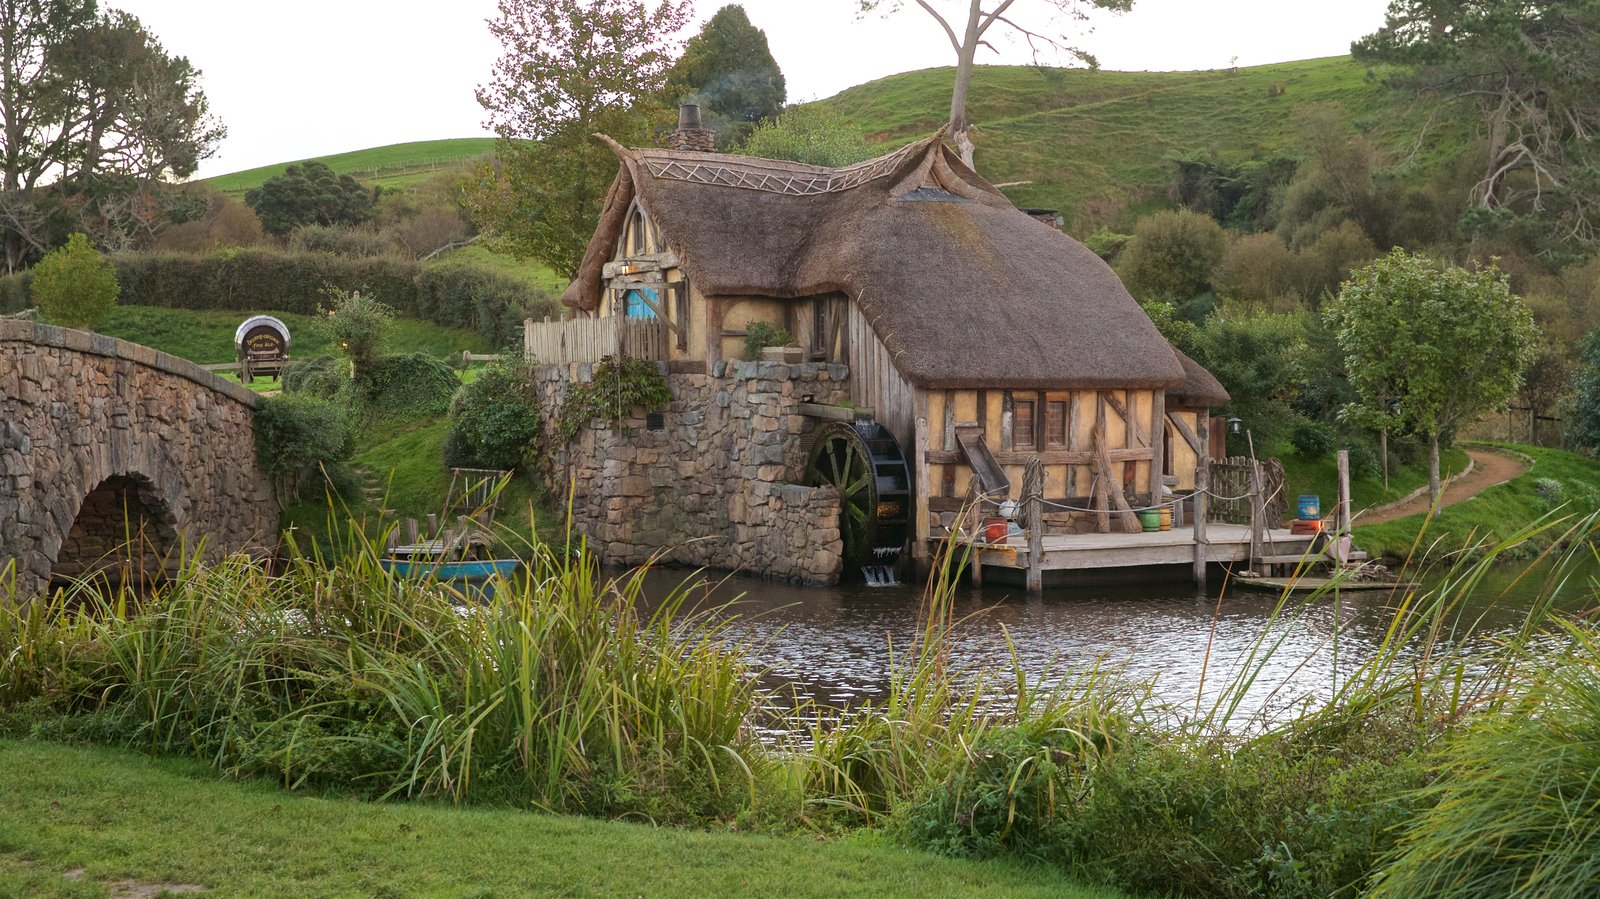 Hobbiton Movie Set which includes a river or creek and a small town or village